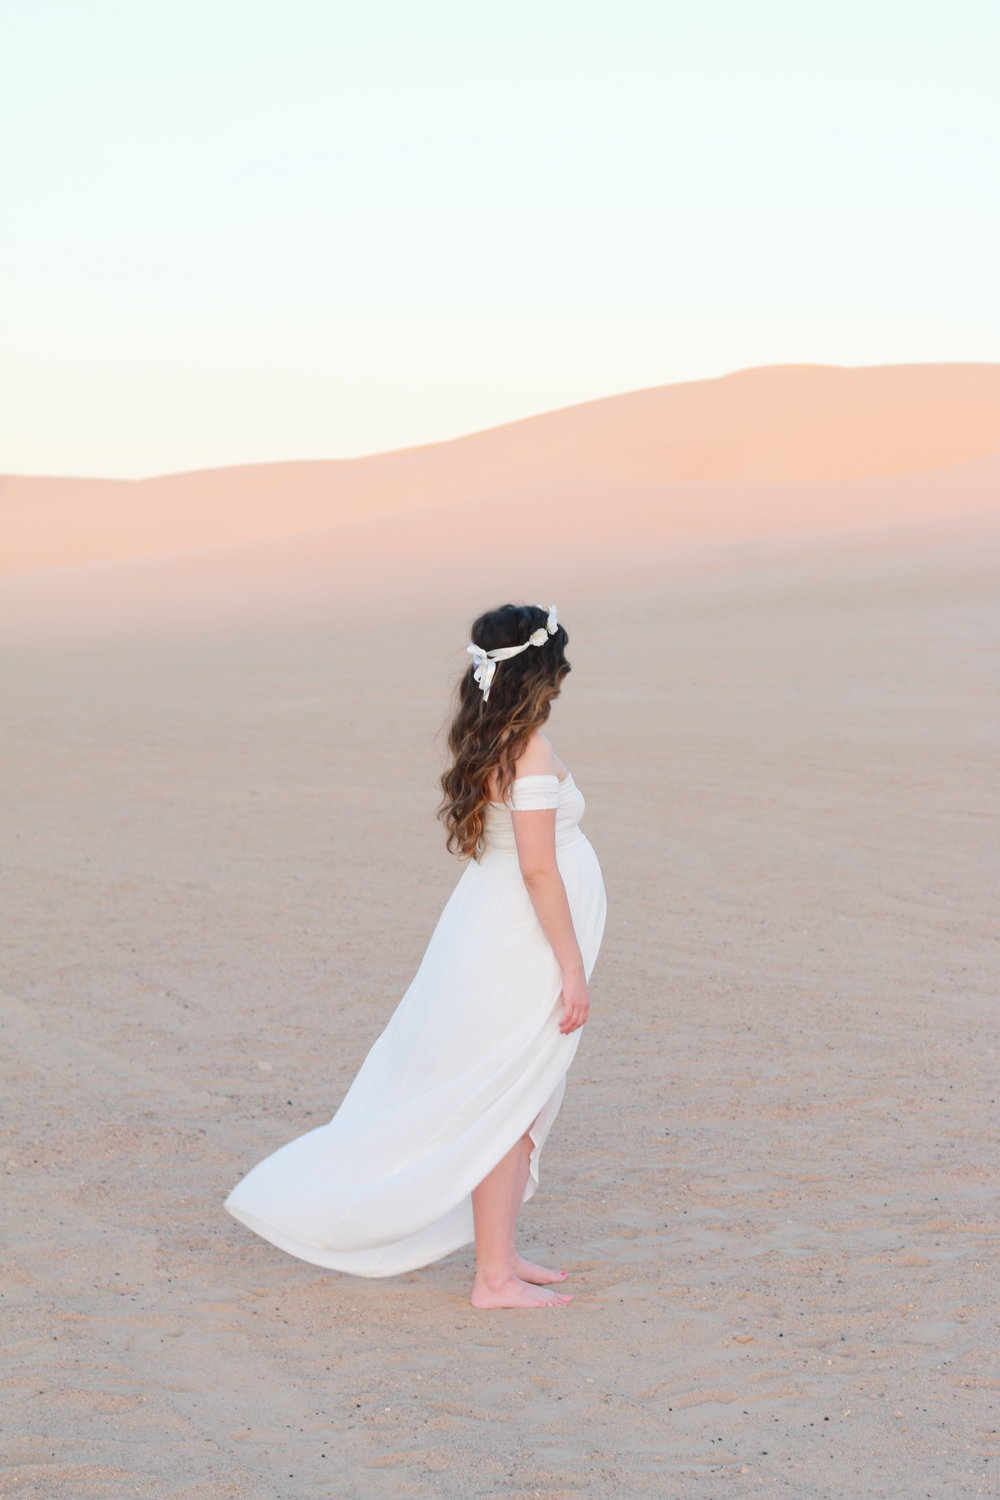 Anthony-and-Stork-Desert-Maternity-Shoot_2689.jpg